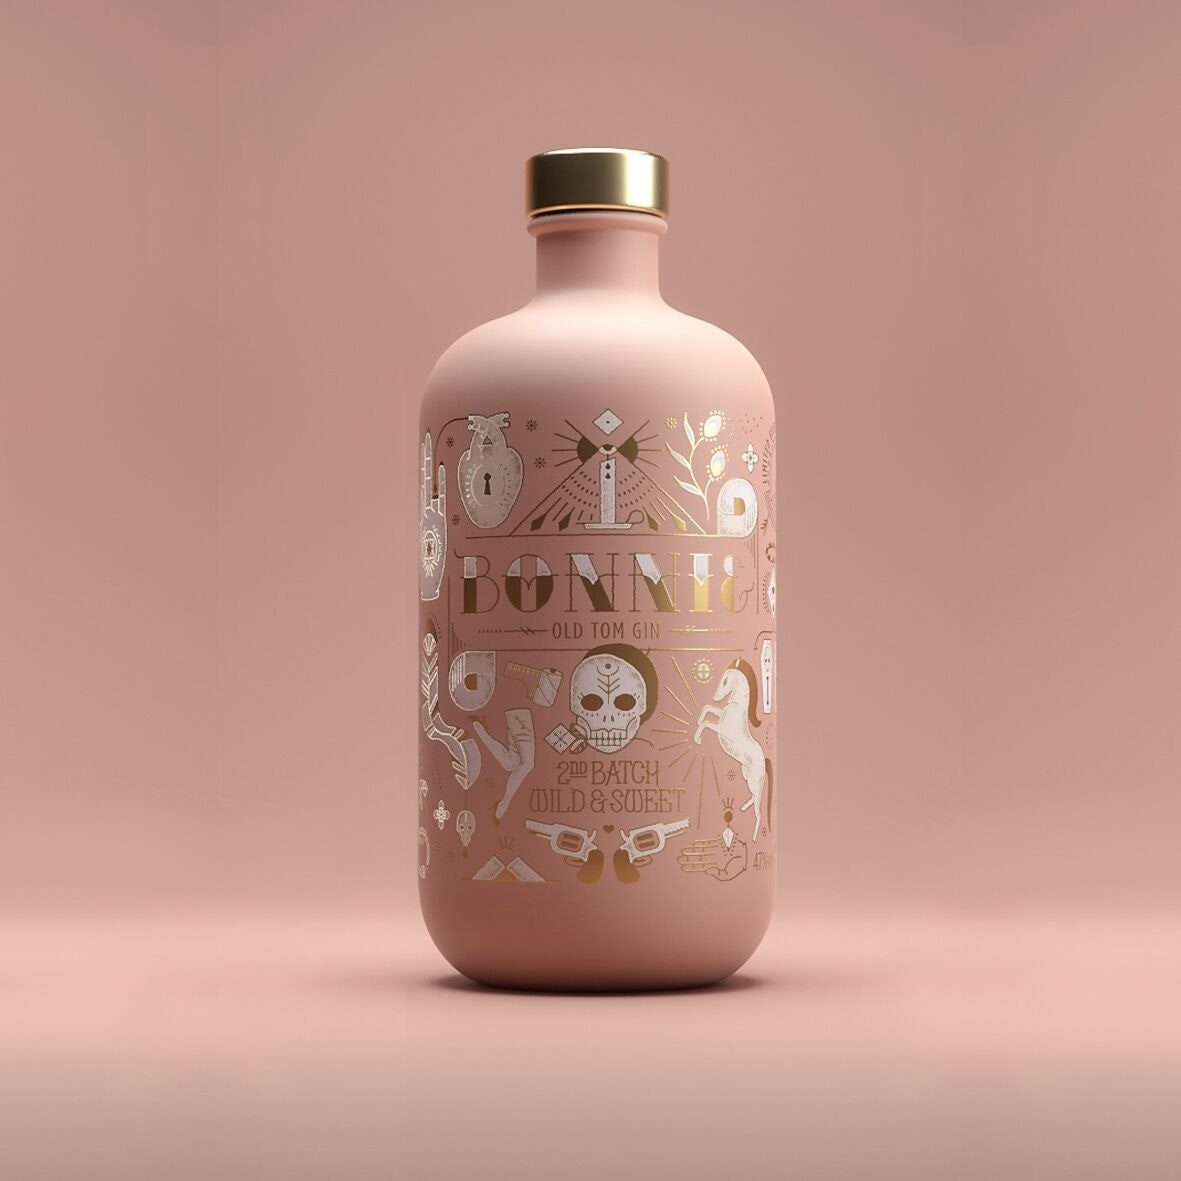 Bottle label design for Bonnie & Clyde limited edition gin